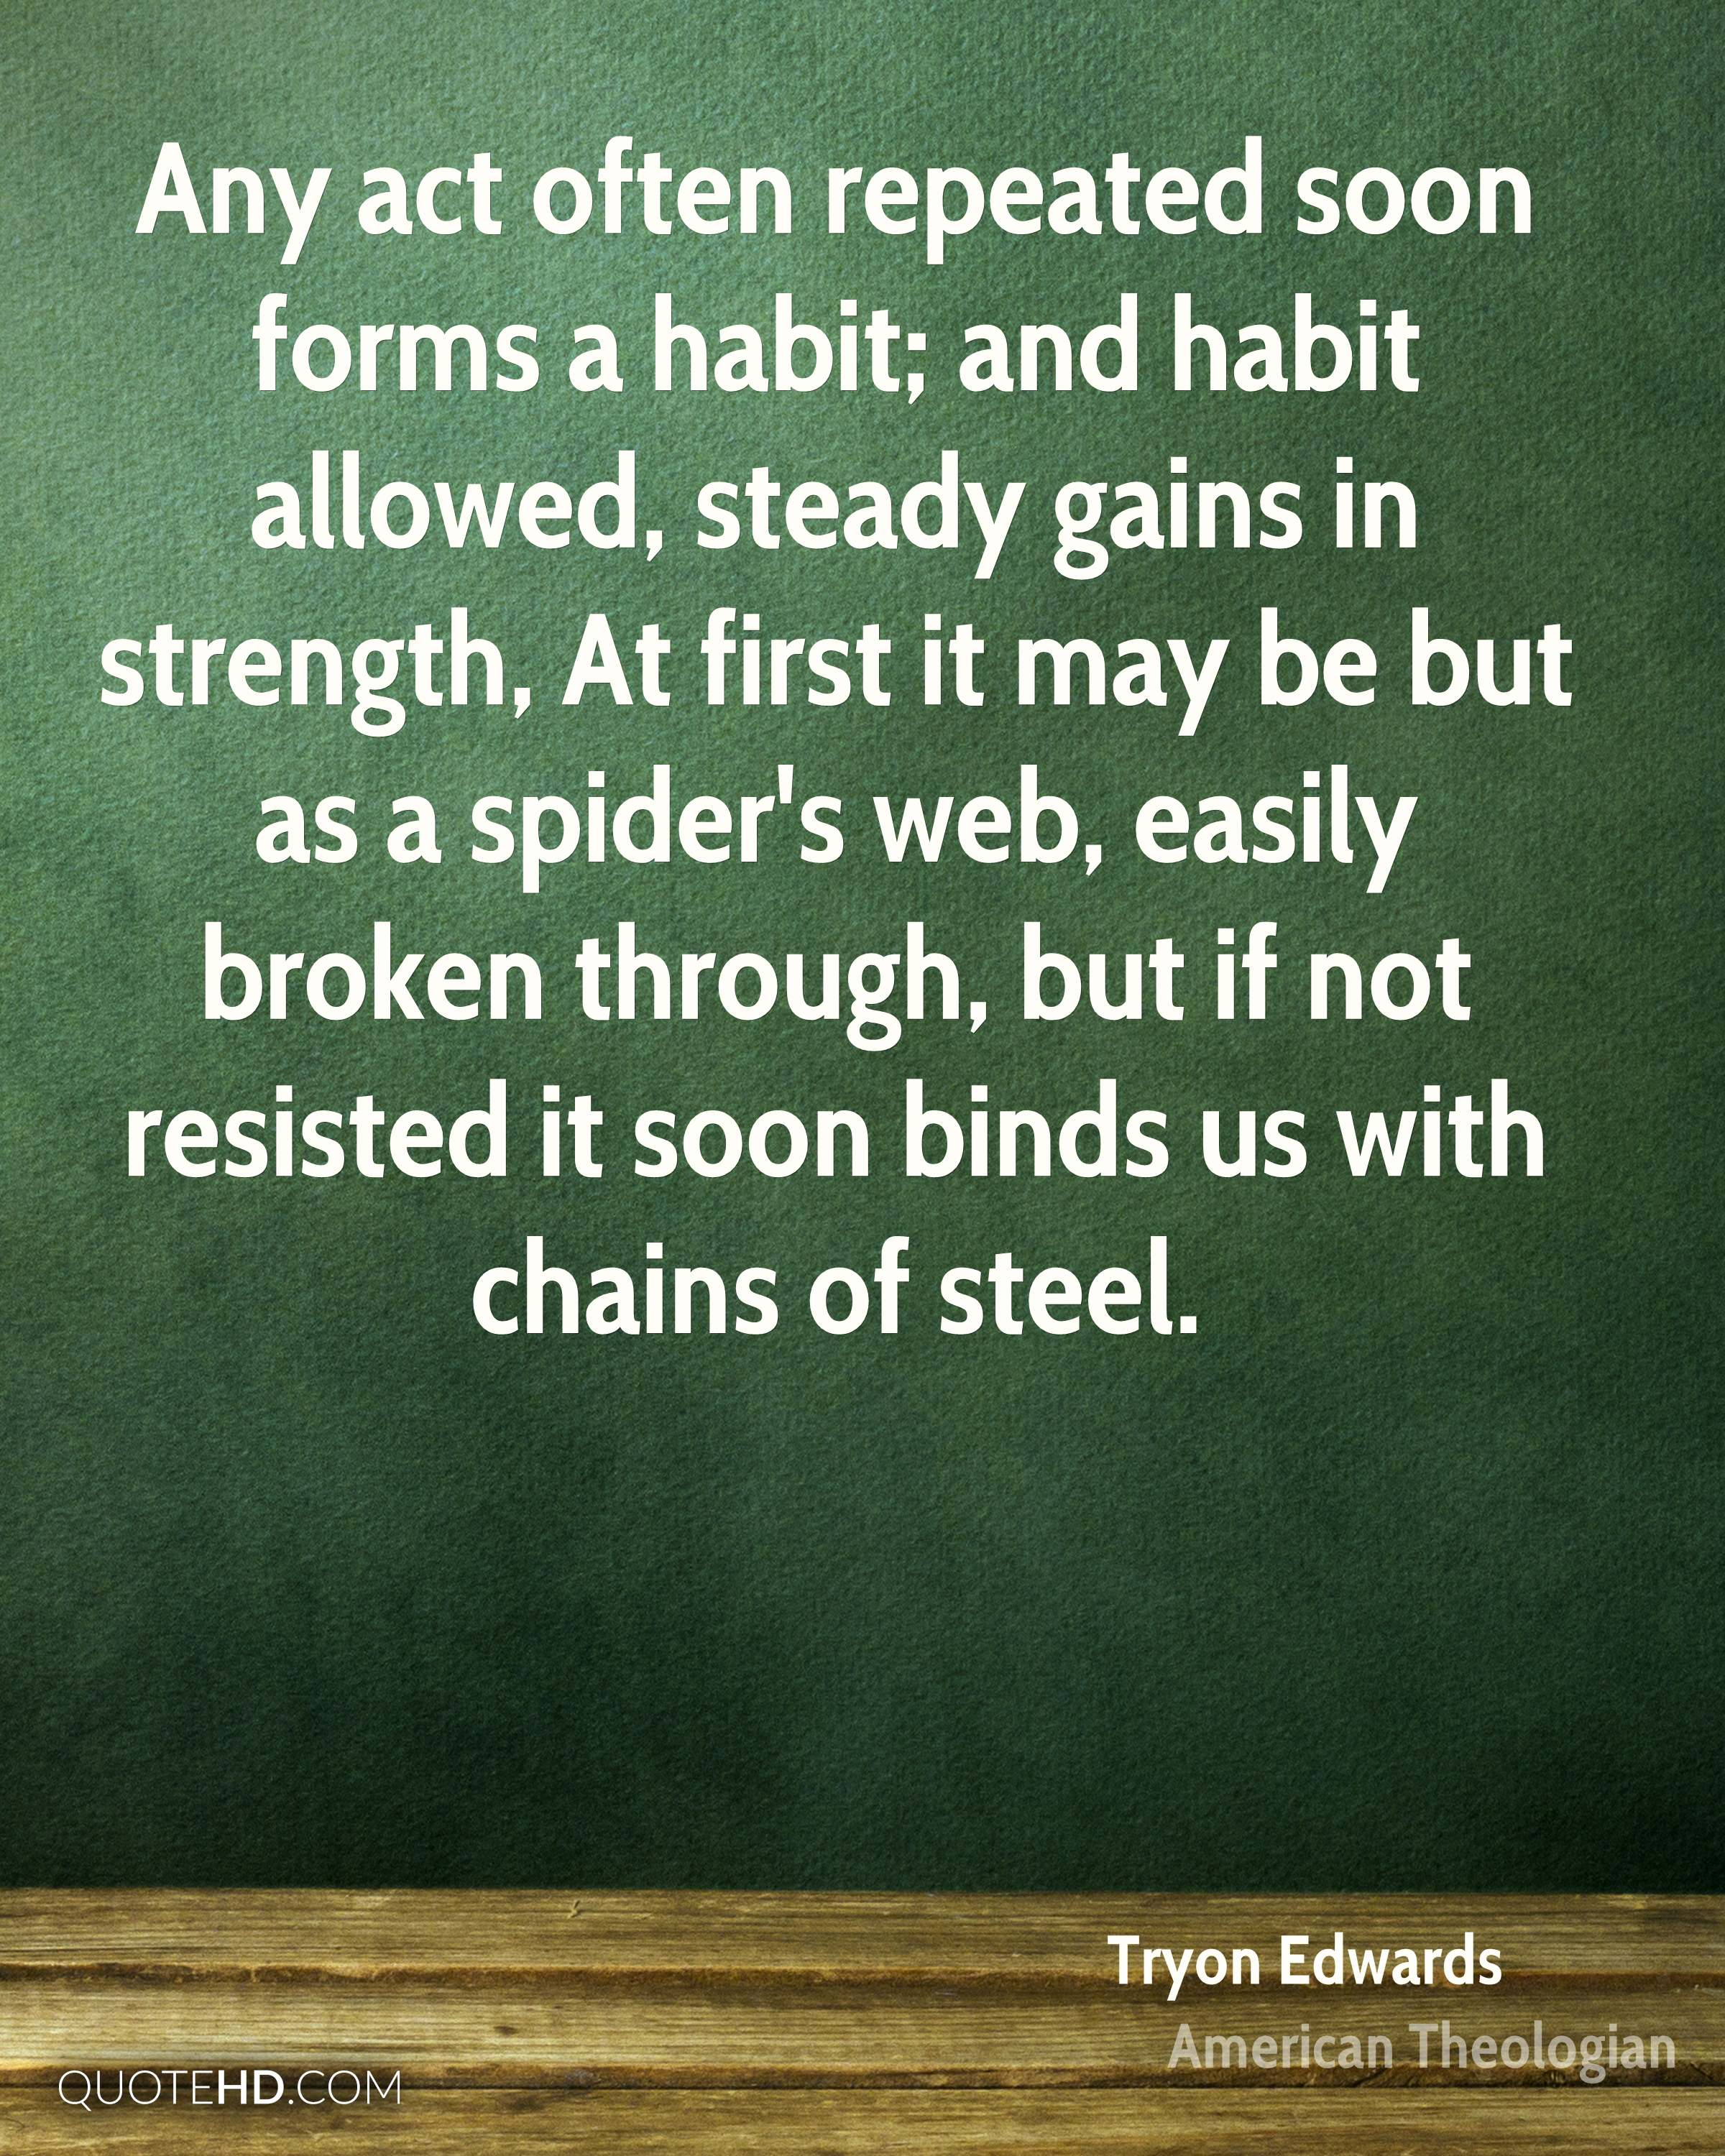 Any act often repeated soon forms a habit; and habit allowed, steady gains in strength, At first it may be but as a spider's web, easily broken through, but if not resisted it soon binds us with chains of steel.